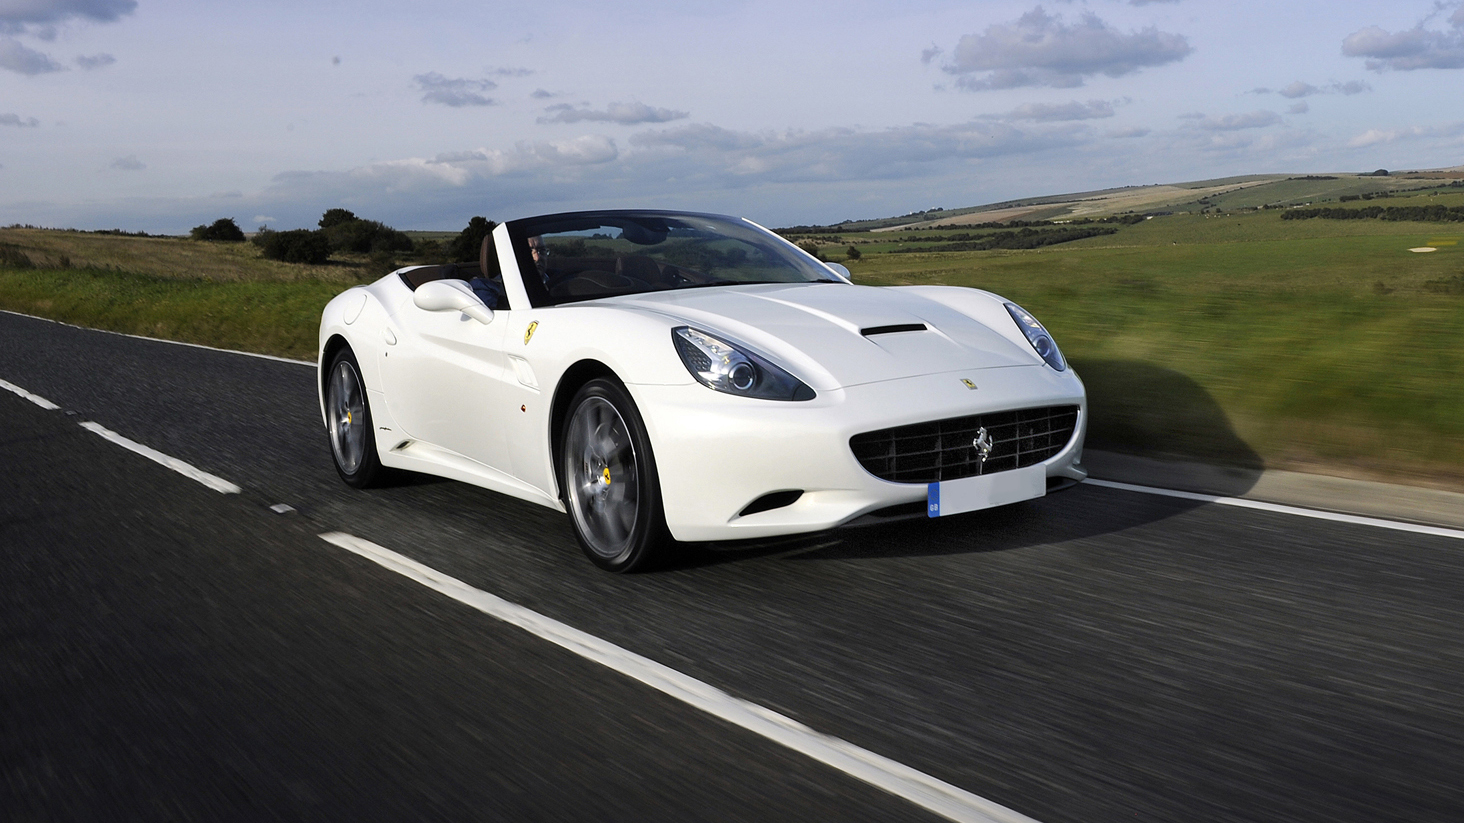 2009 Ferrari California Simon Clay1